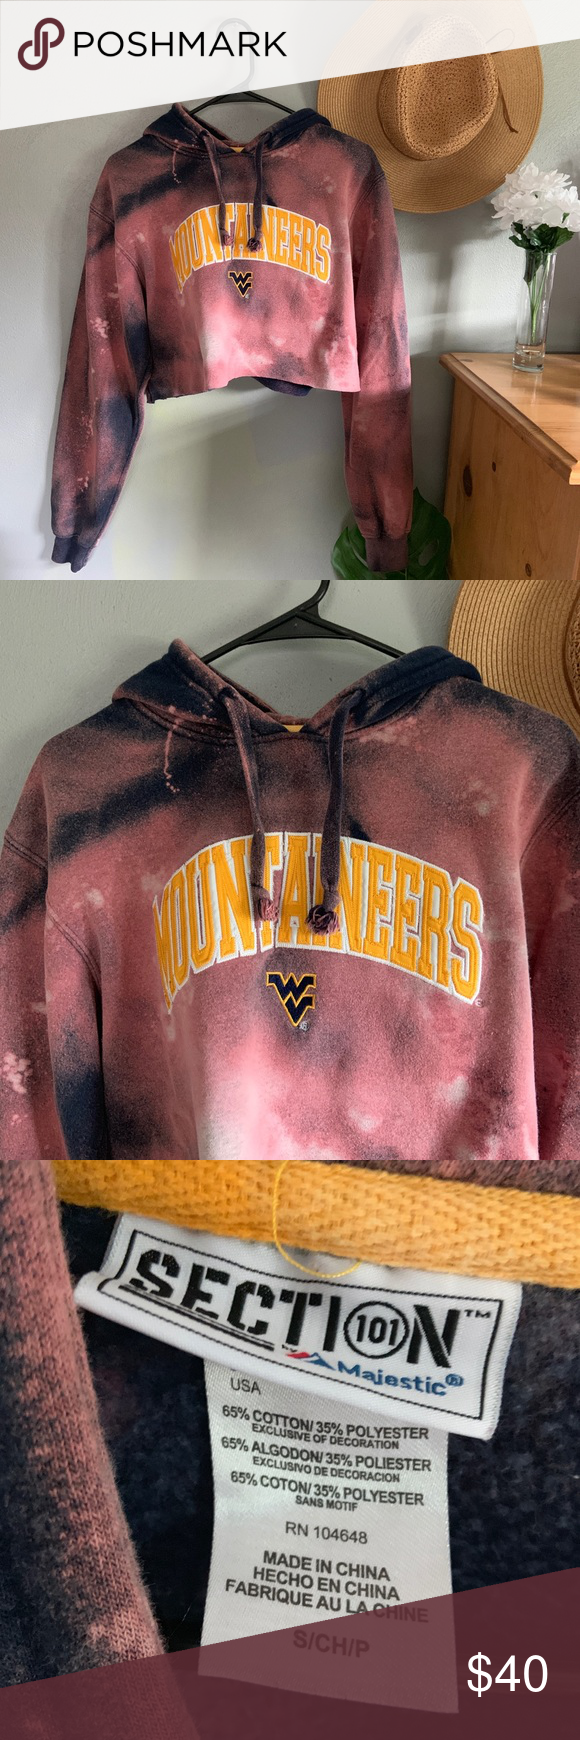 WVU Mountaineers Acid Wash Cropped Hoodie The perfect sweatshirt for game days in Morgantown!  Size small, cropped fit Custom Acid wash / bleached design (kind of has a space dye effect) West Virginia University Mountaineers Super cute trendy style— pairs great with high waisted denim :) Tops Sweatshirts & Hoodies #wvumountaineers WVU Mountaineers Acid Wash Cropped Hoodie The perfect sweatshirt for game days in Morgantown!  Size small, cropped fit Custom Acid wash / bleached design (kind of ha #wvumountaineers